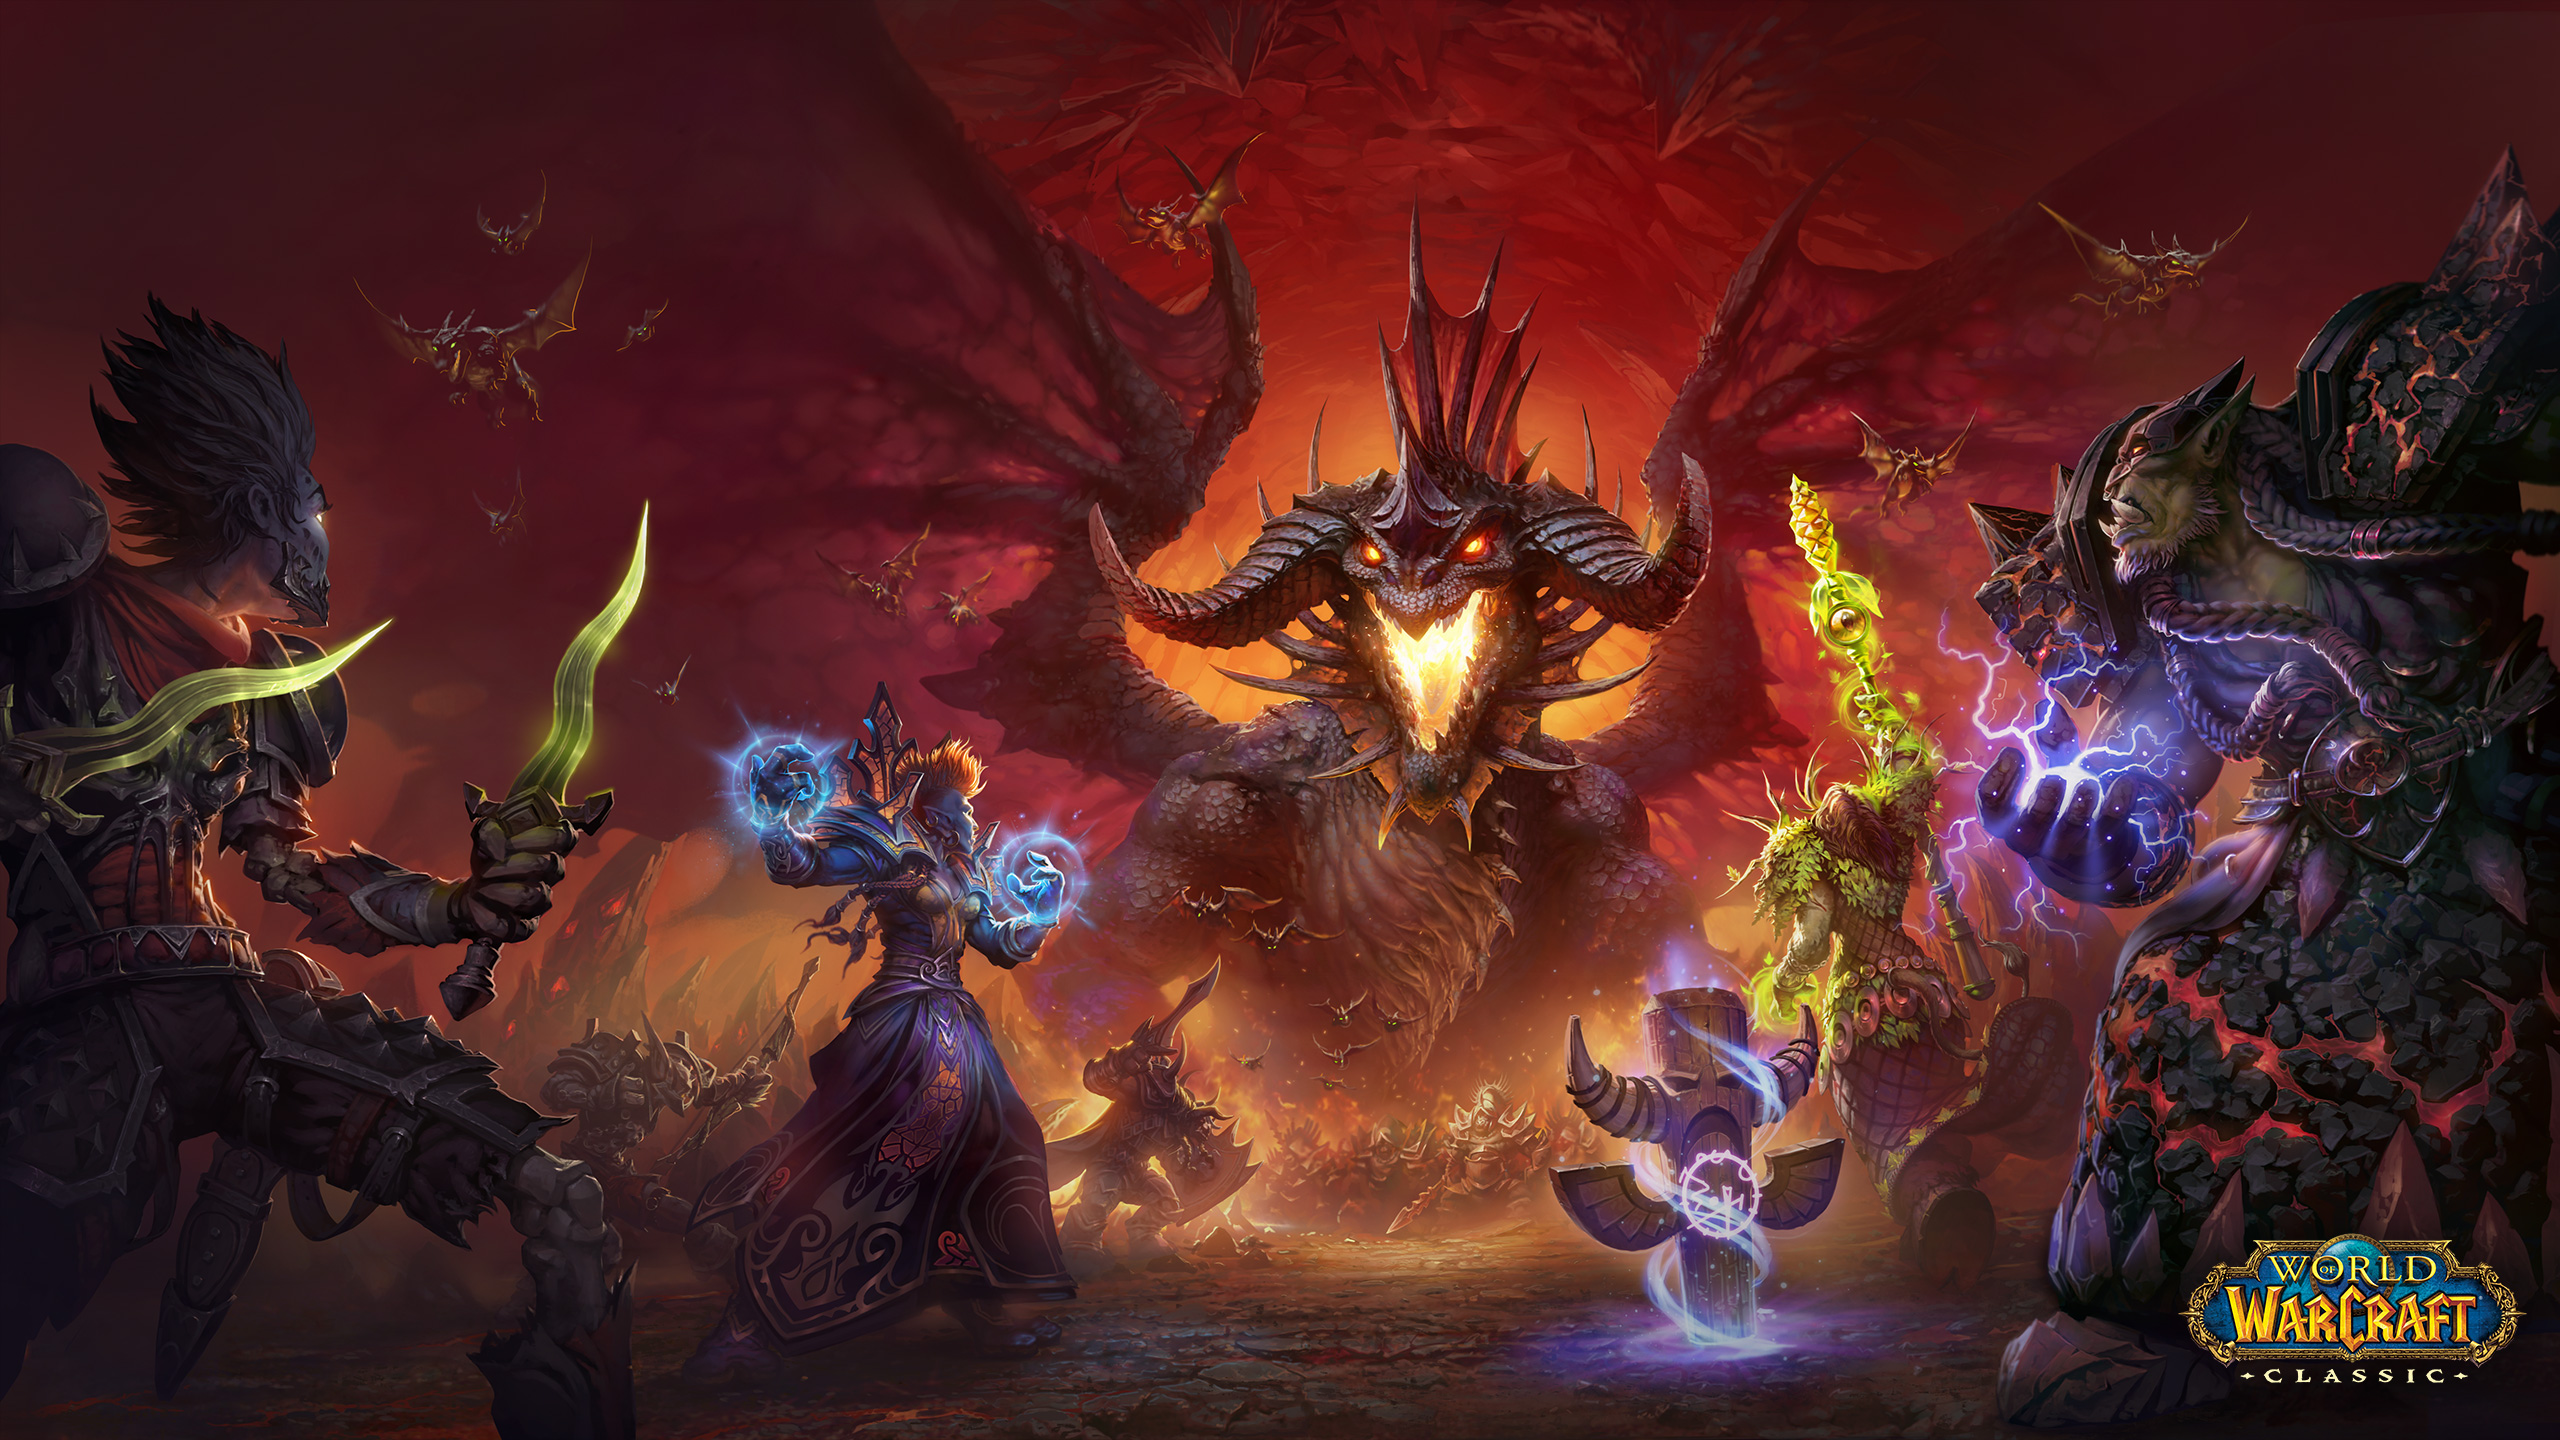 world of warcraft shadowlands wallpaper 2560x1440